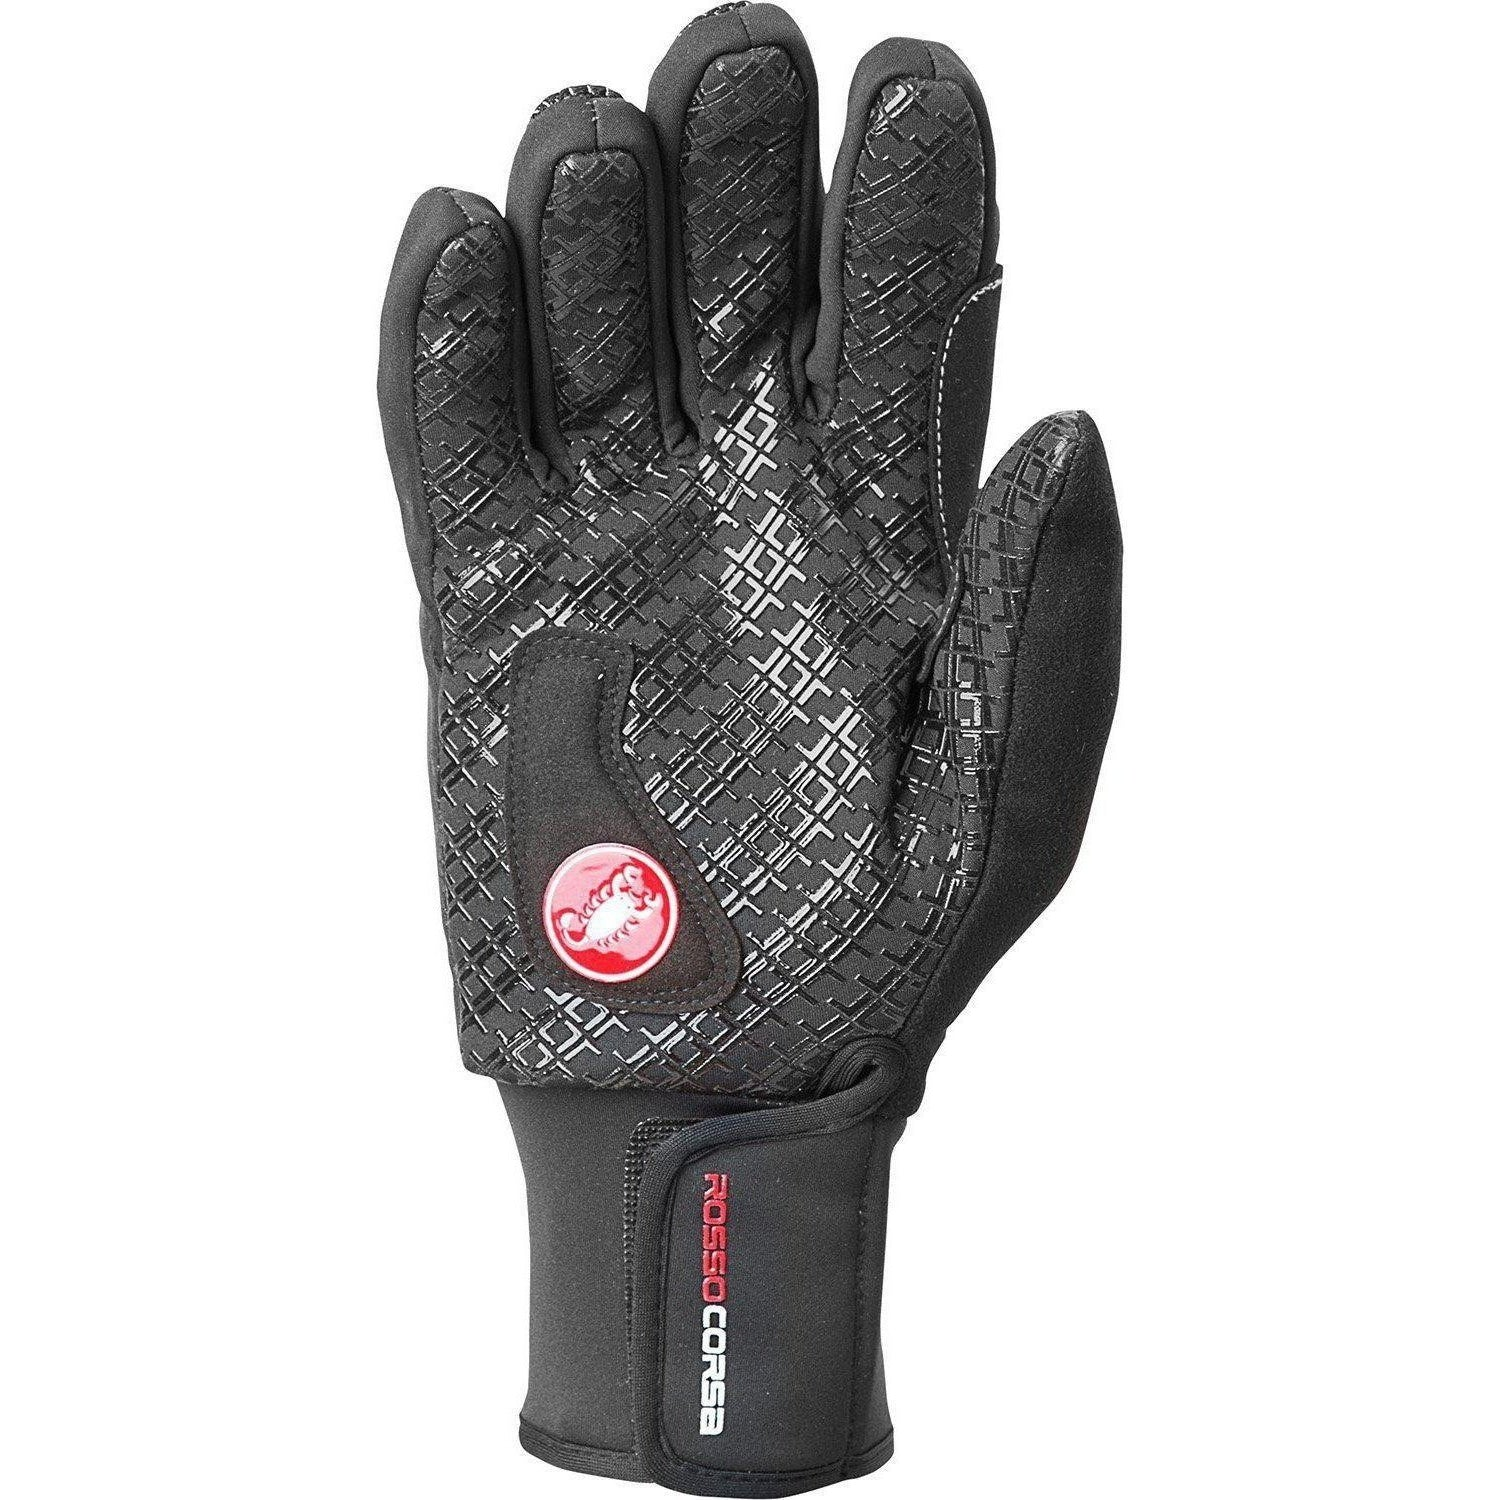 Castelli Estremo Winter Gloves